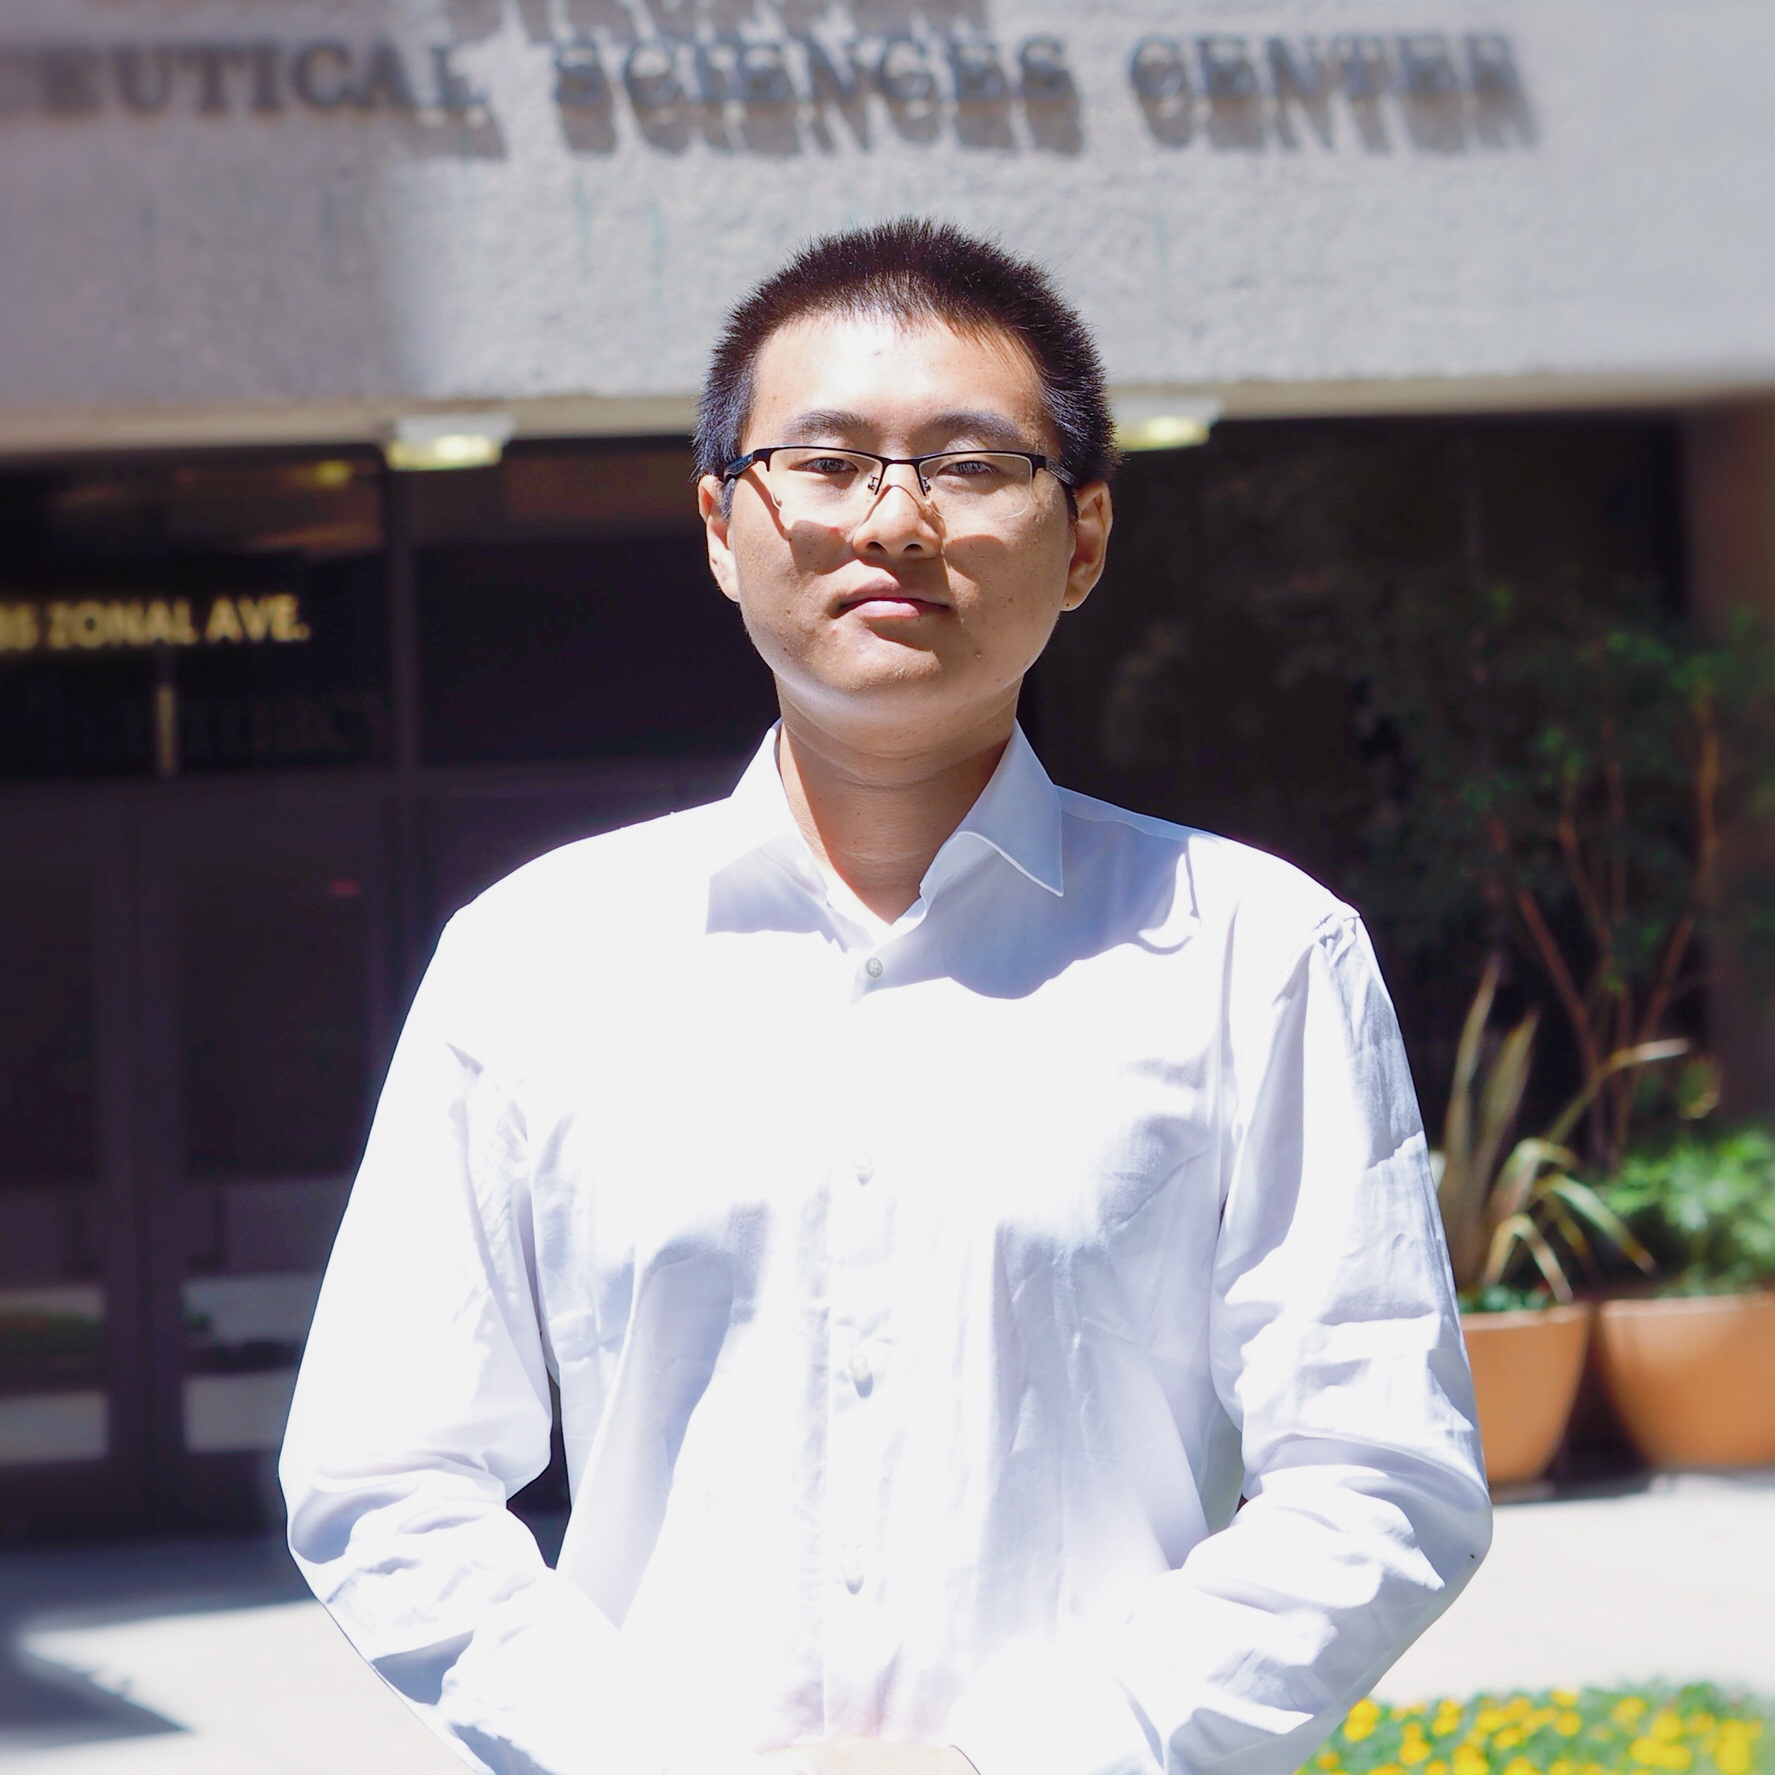 Charlie Chen is a first-year graduate student majoring in Healthcare Decision Analysis at the USC School of Pharmacy. He completed his Bachelor's degree in Biology at University of Science and Technology of China.